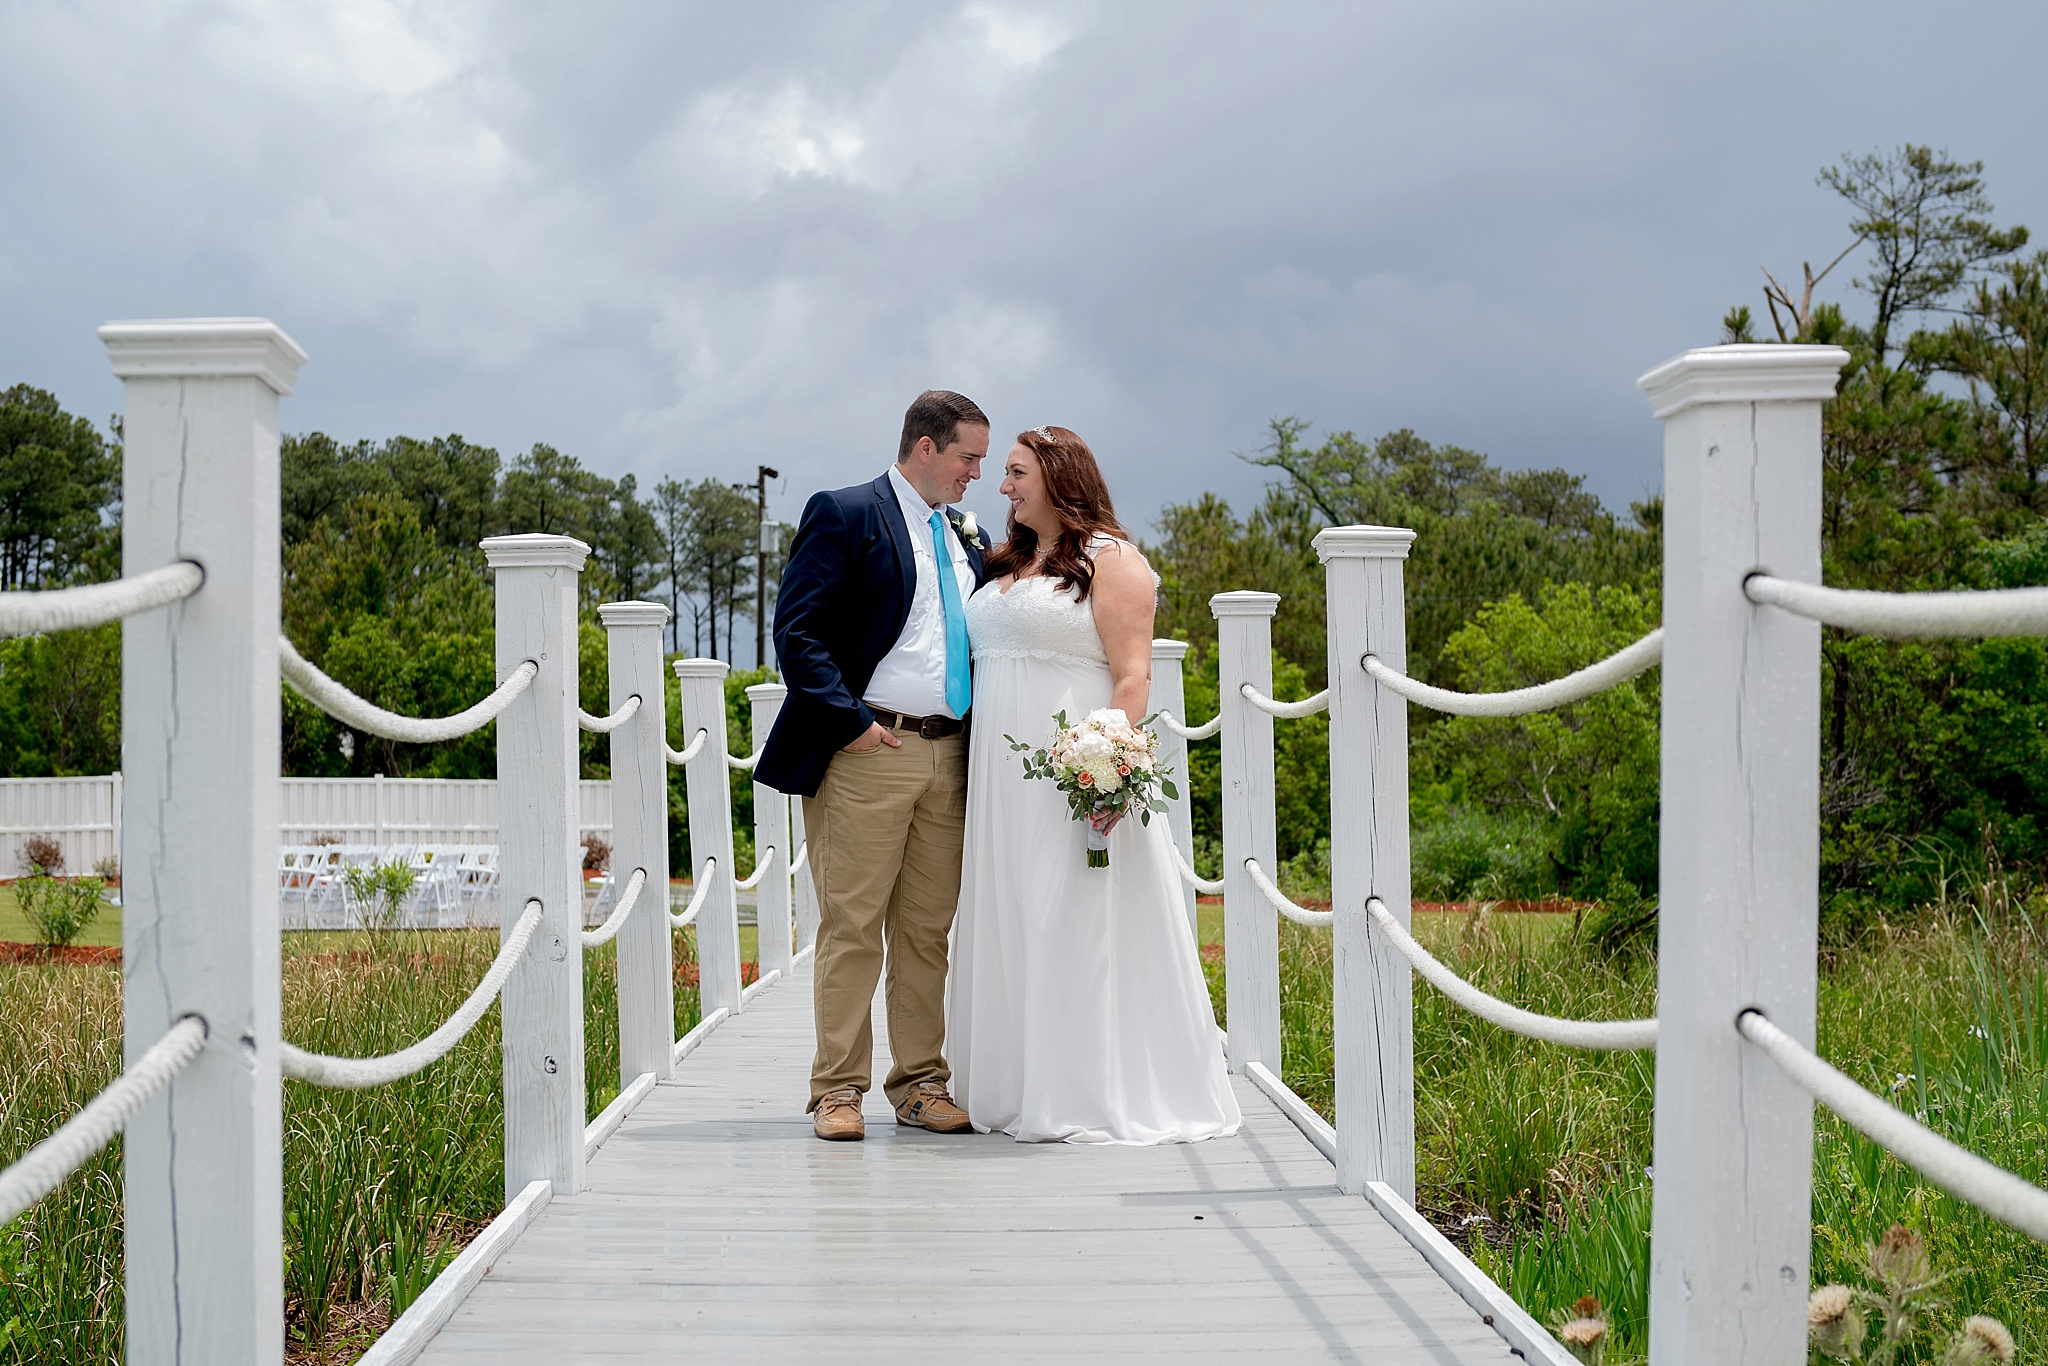 Manteo-NC-Wedding-Photographer-128.jpg